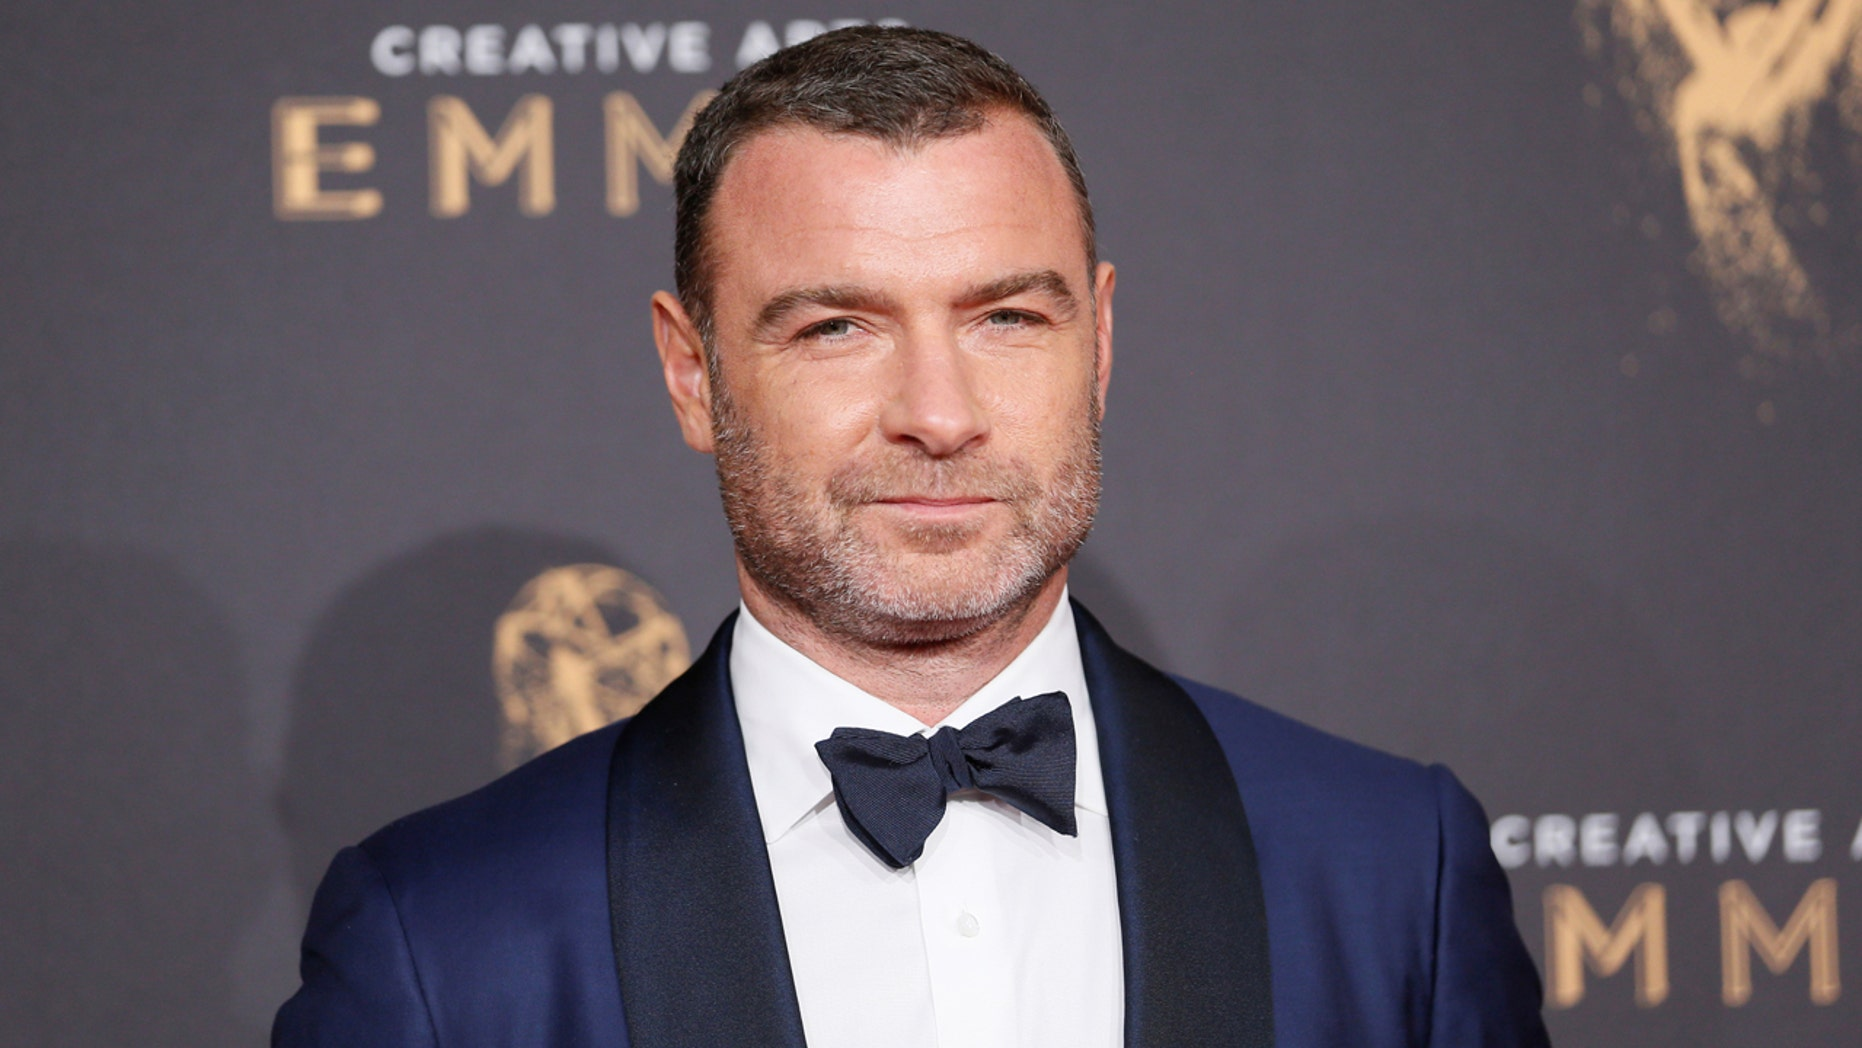 Liev Schreiber poses on the carpet at the 2017 Creative Emmy Awards in Los Angeles.